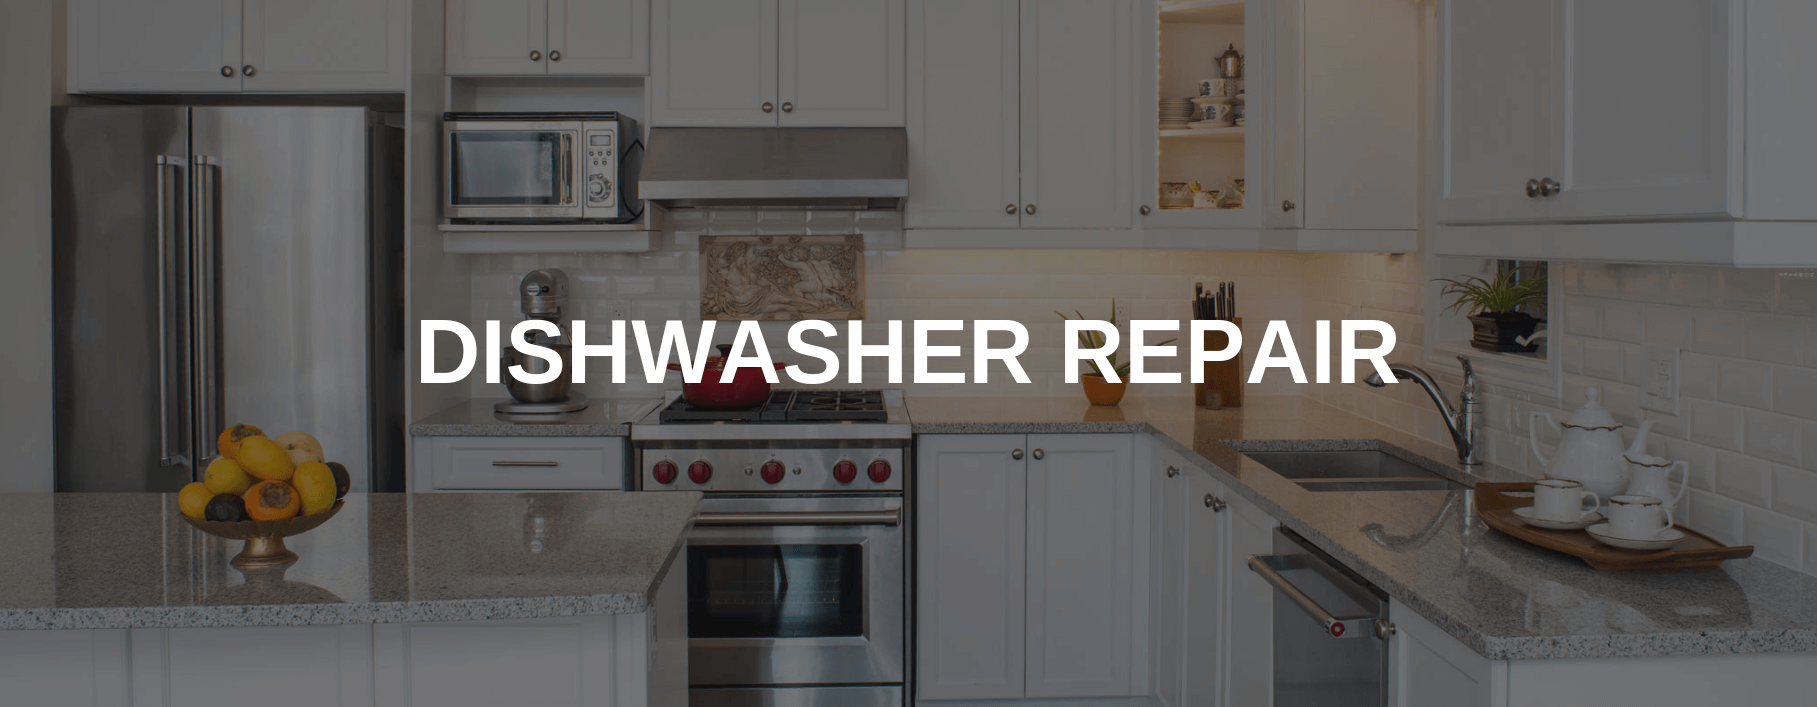 dishwasher repair national city